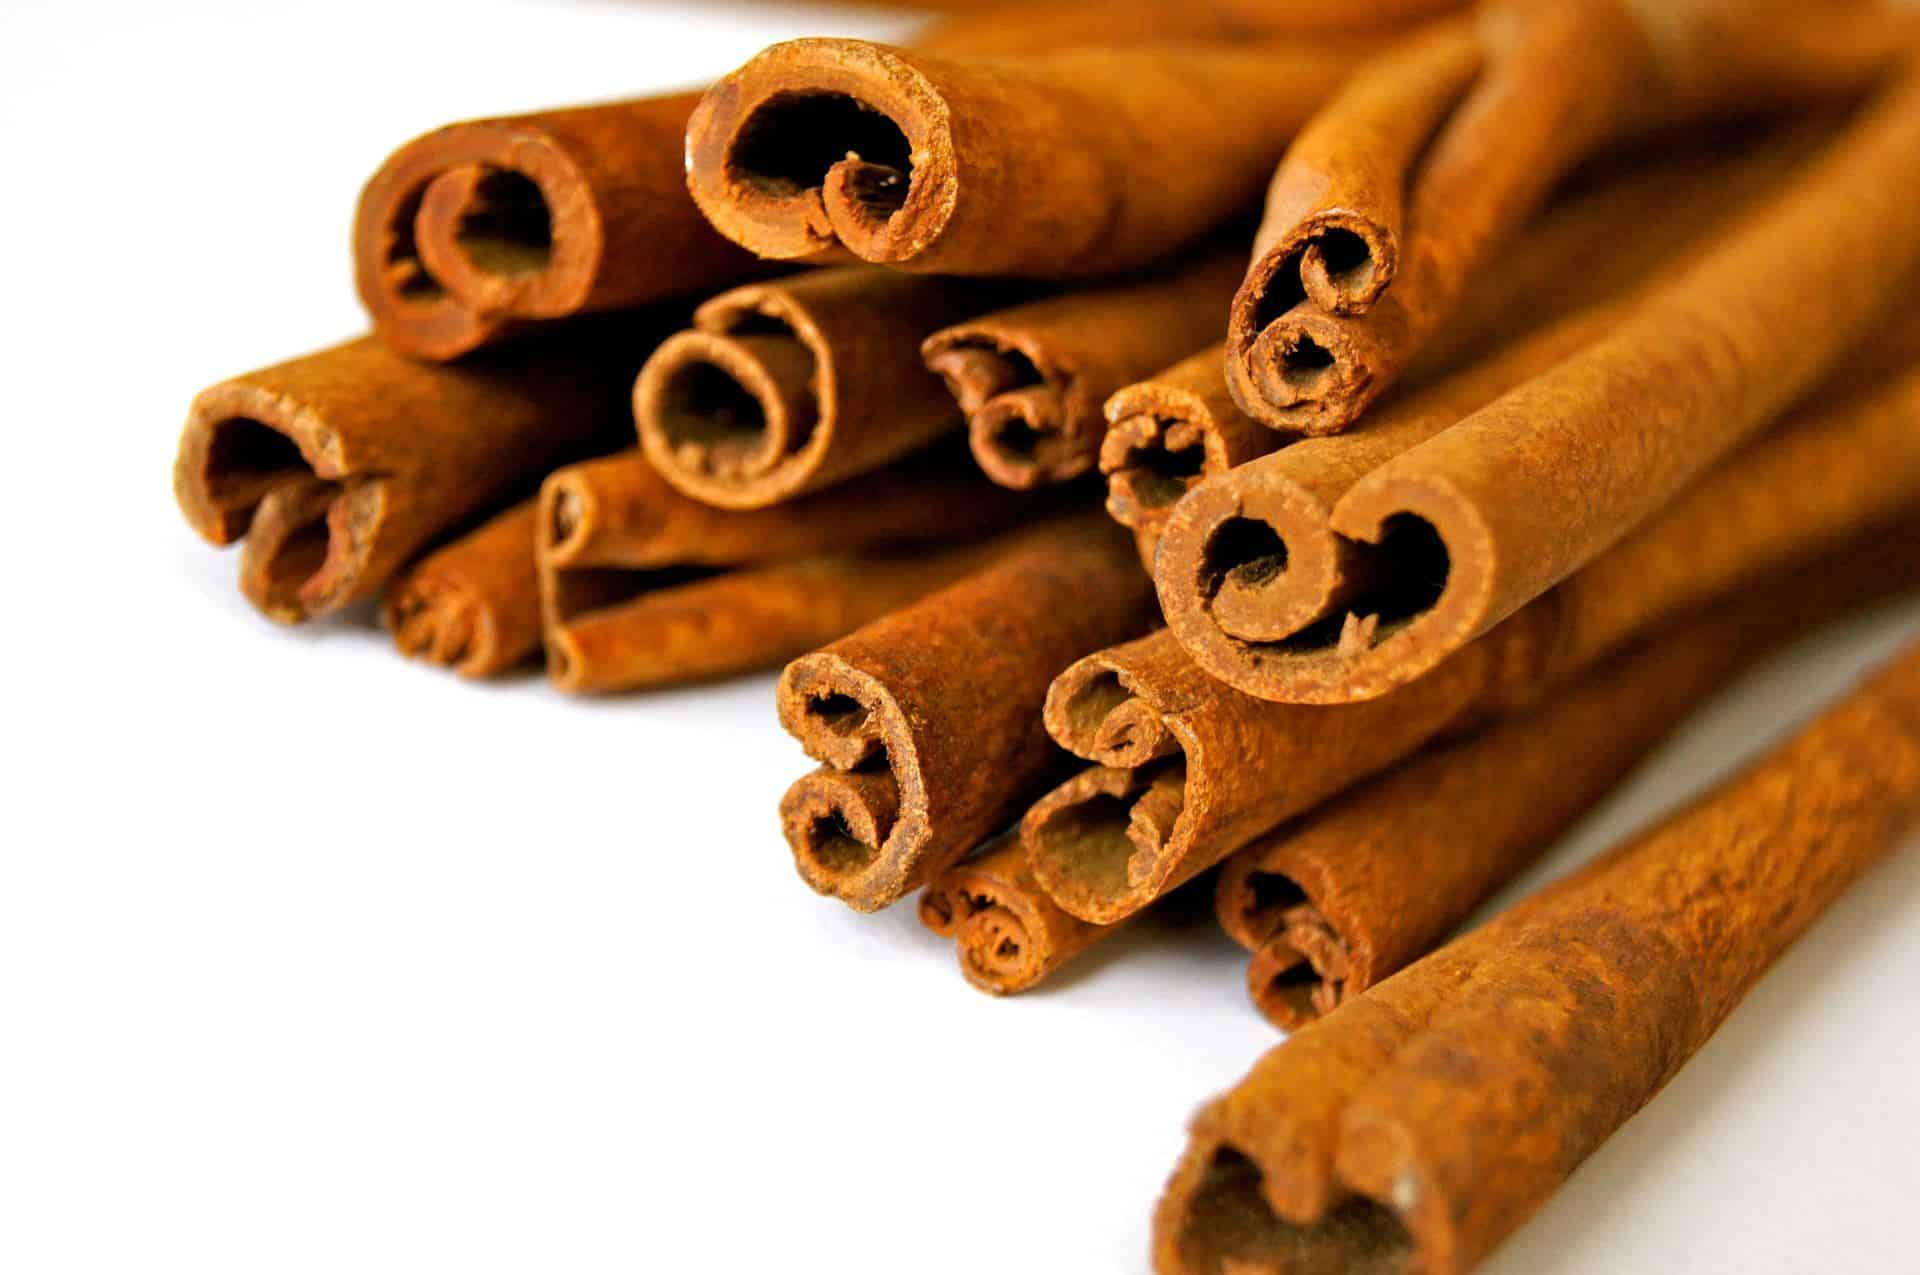 Cinnamon - Tastes good and makes you not feel hungry